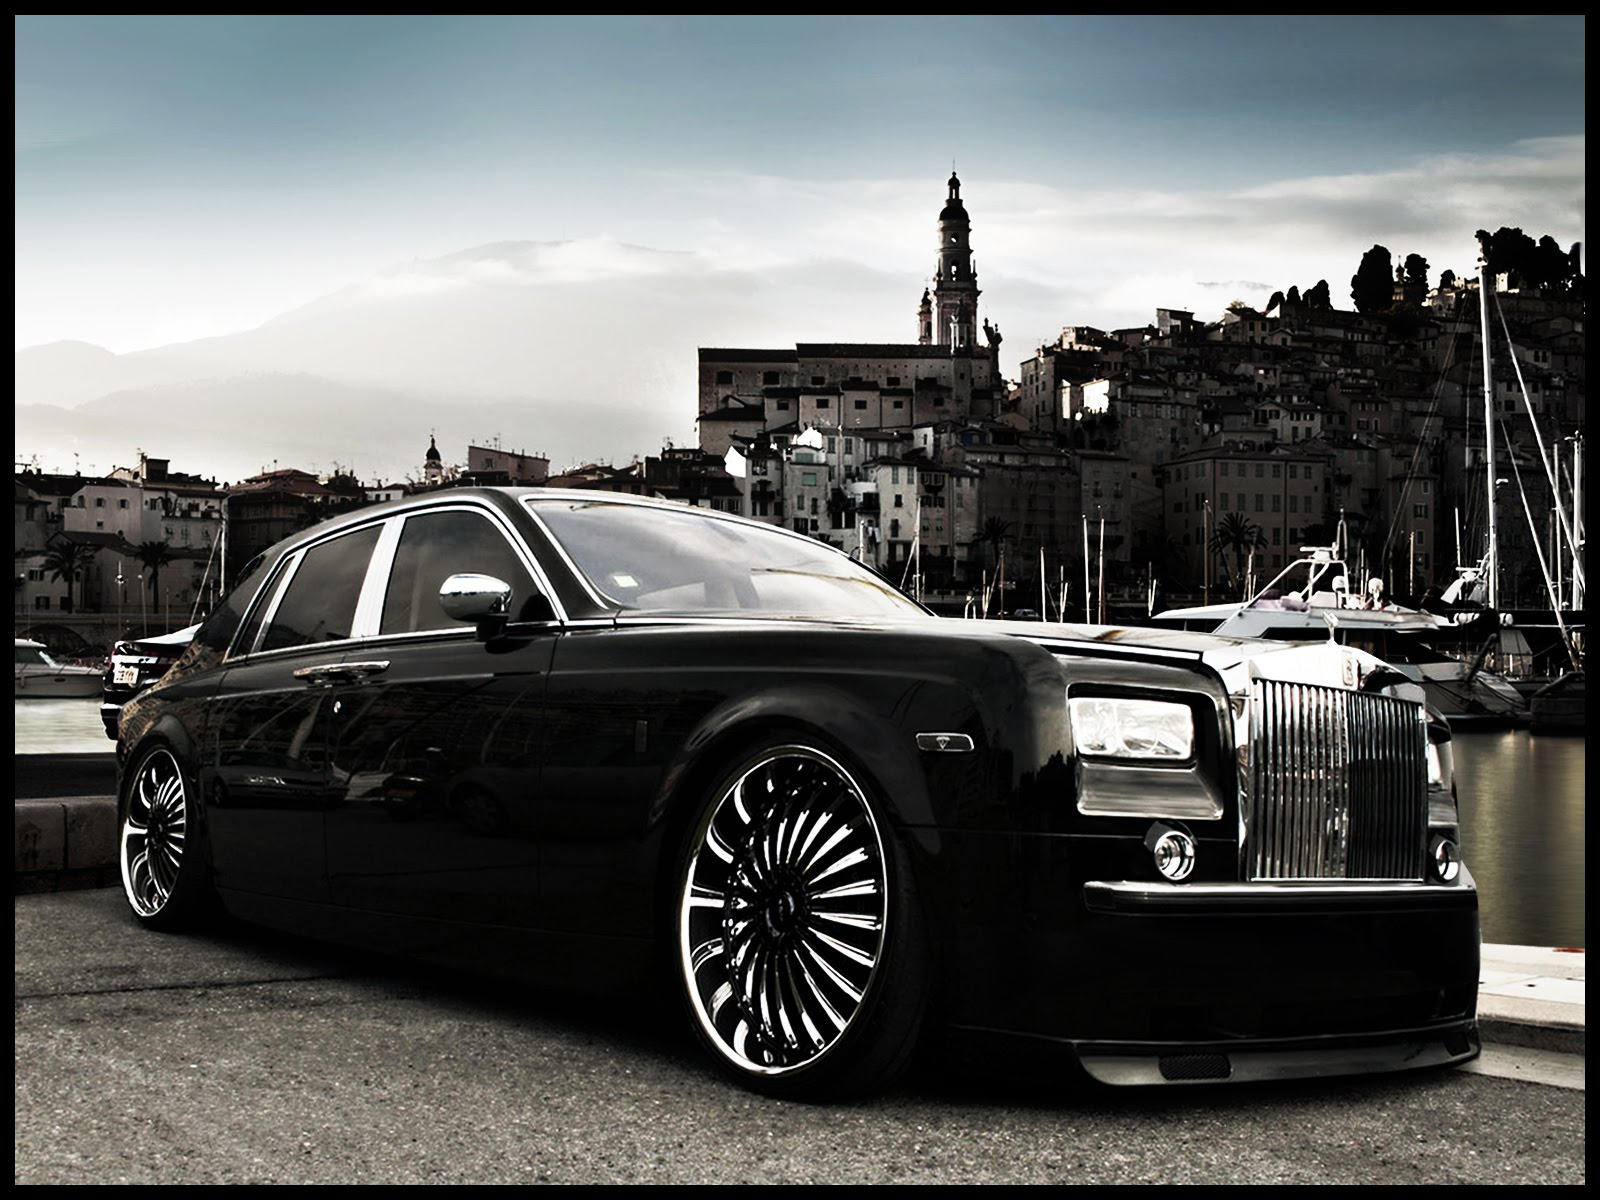 http://4.bp.blogspot.com/-iIsYudPQ4n8/TYXEgyX1x9I/AAAAAAAAHIw/UFx7ruJz74k/s1600/rolls_royce_phanton_vip_Rolls-Royce-Phantom-royal-royals-car-wallpaper-Hyundai-Veloster-Ford-royal-royals-car-Focus-Electric-Mercedes-Benz-royal-royals-car-honda-civic-toyota-